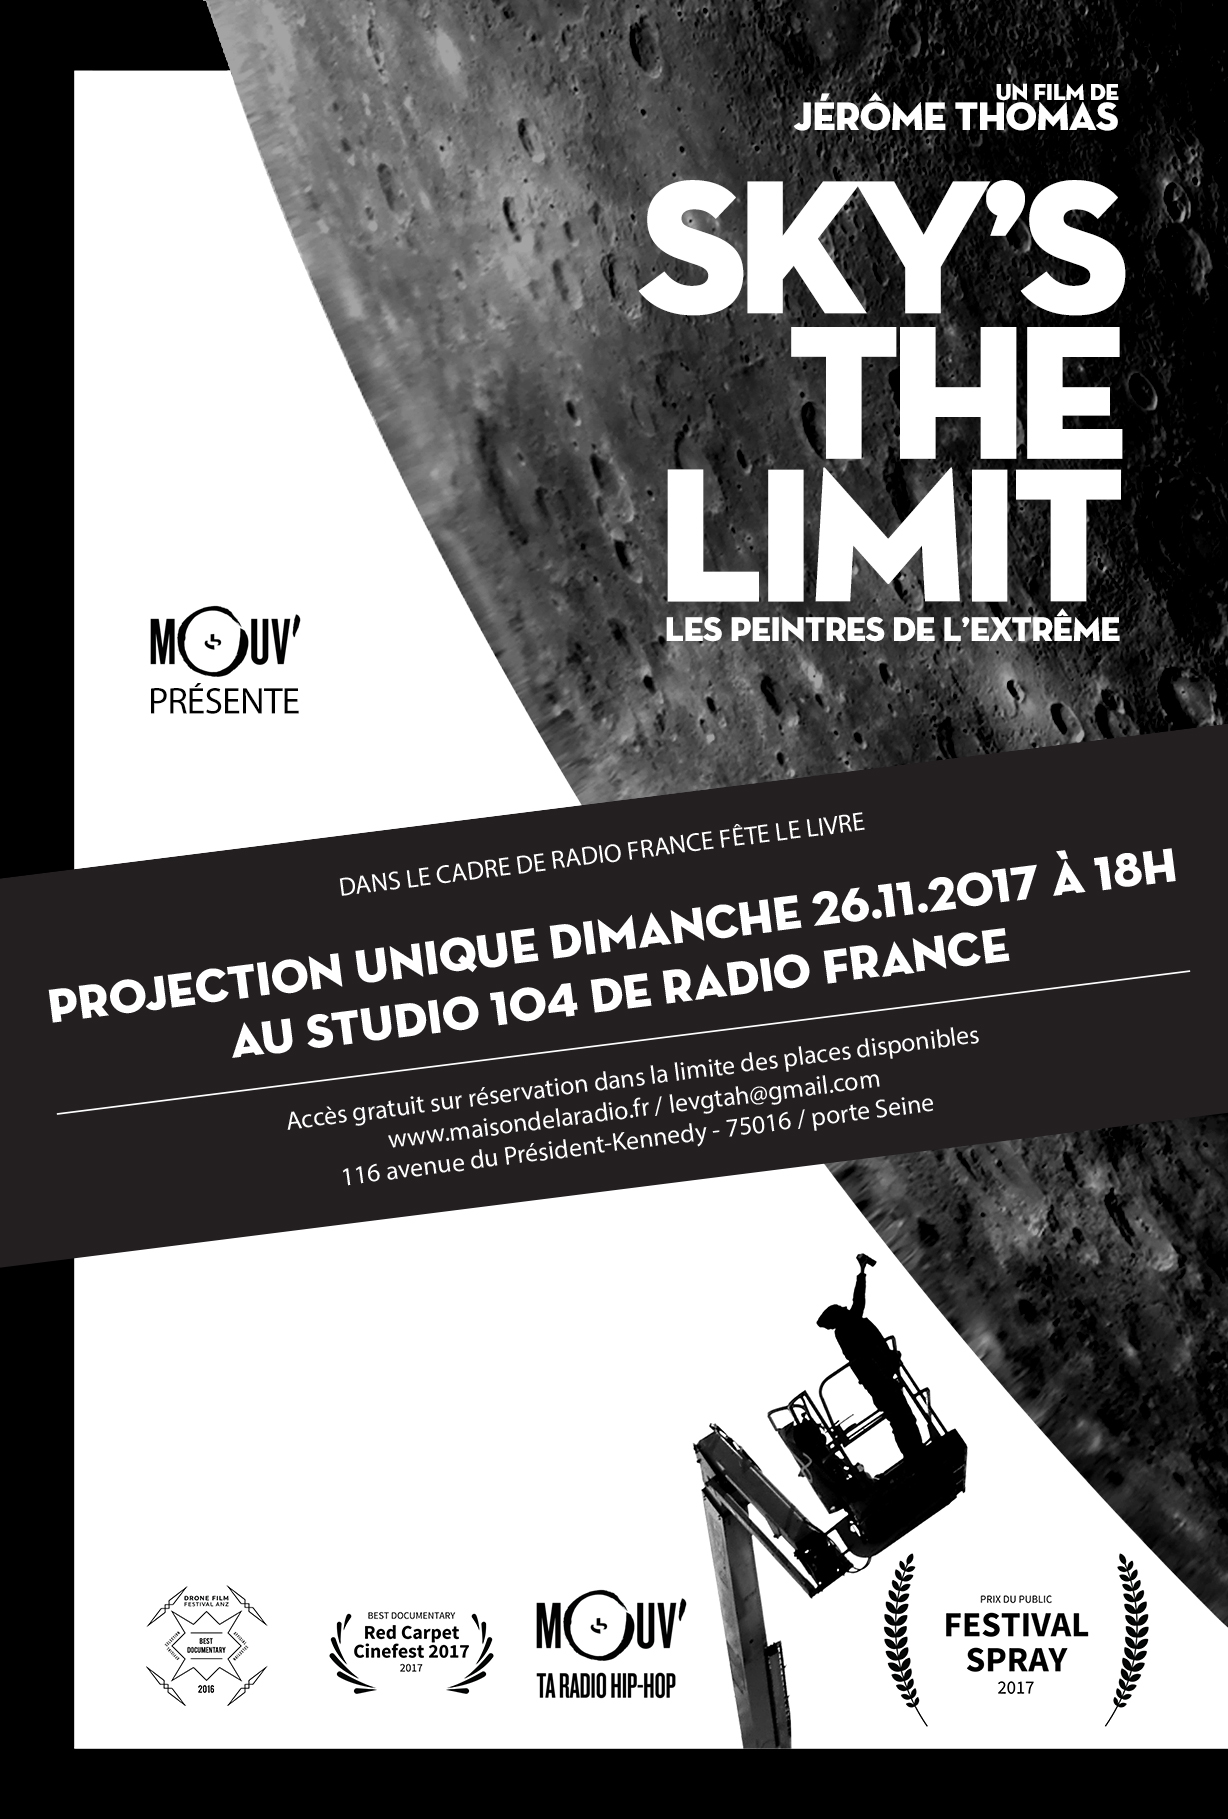 PROJECTION DU DOCU « SKY'S THE LIMIT, LES PEINTRES DE L'EXTRÊME » AU STUDIO 104 (MAISON DE LA RADIO)